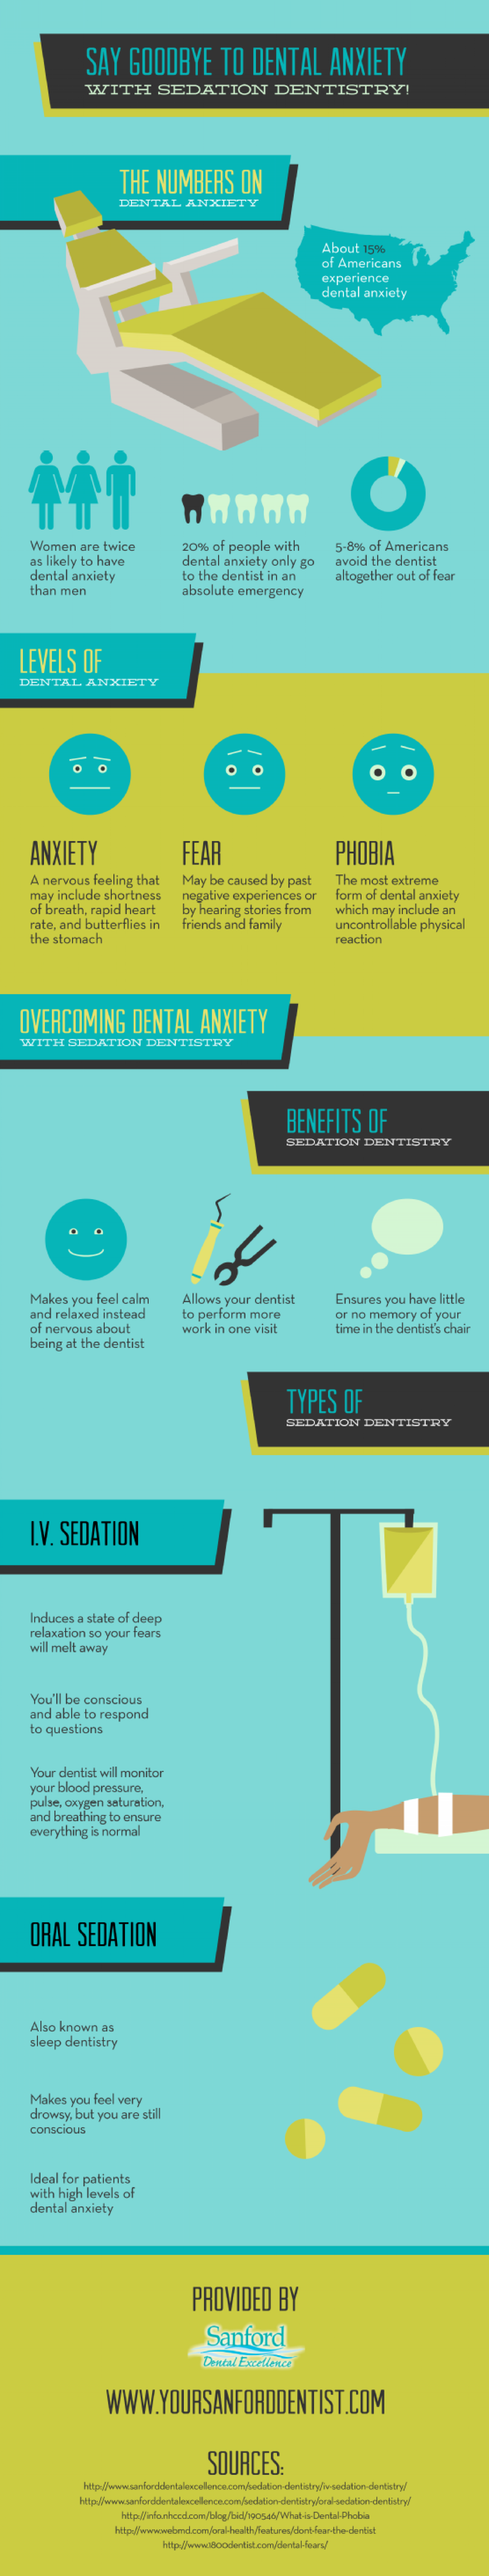 Say Goodbye to Dental Anxiety with Sedation Dentistry! Infographic